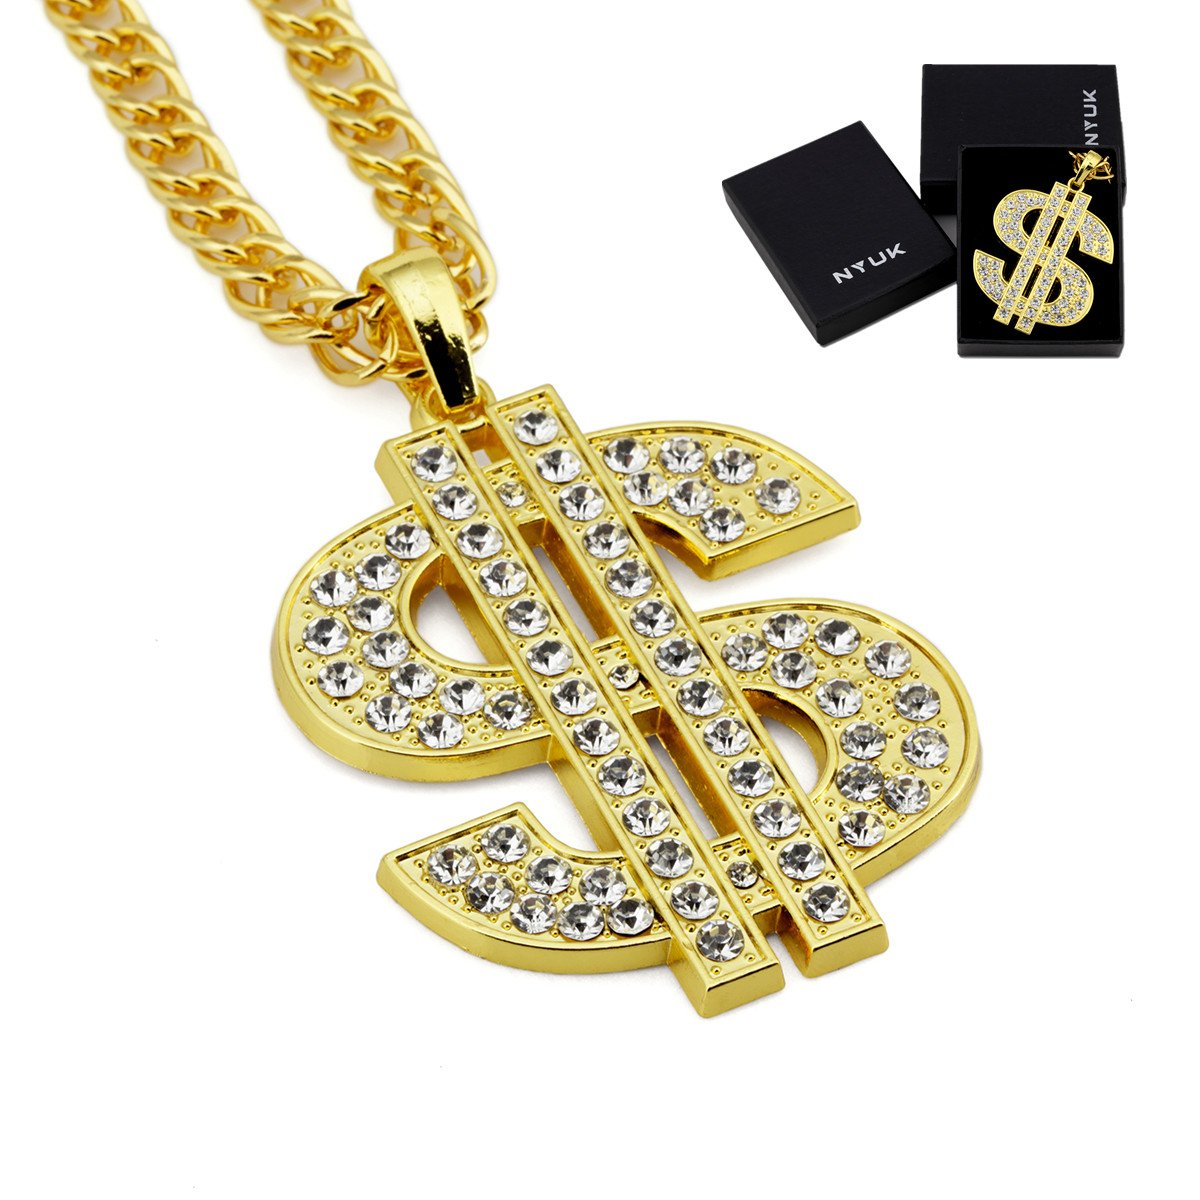 Mens gold chain dollar pendant hip hop rhinestone necklace jewelry mens gold chain dollar pendant hip hop rhinestone necklace jewelry gift for him aloadofball Choice Image